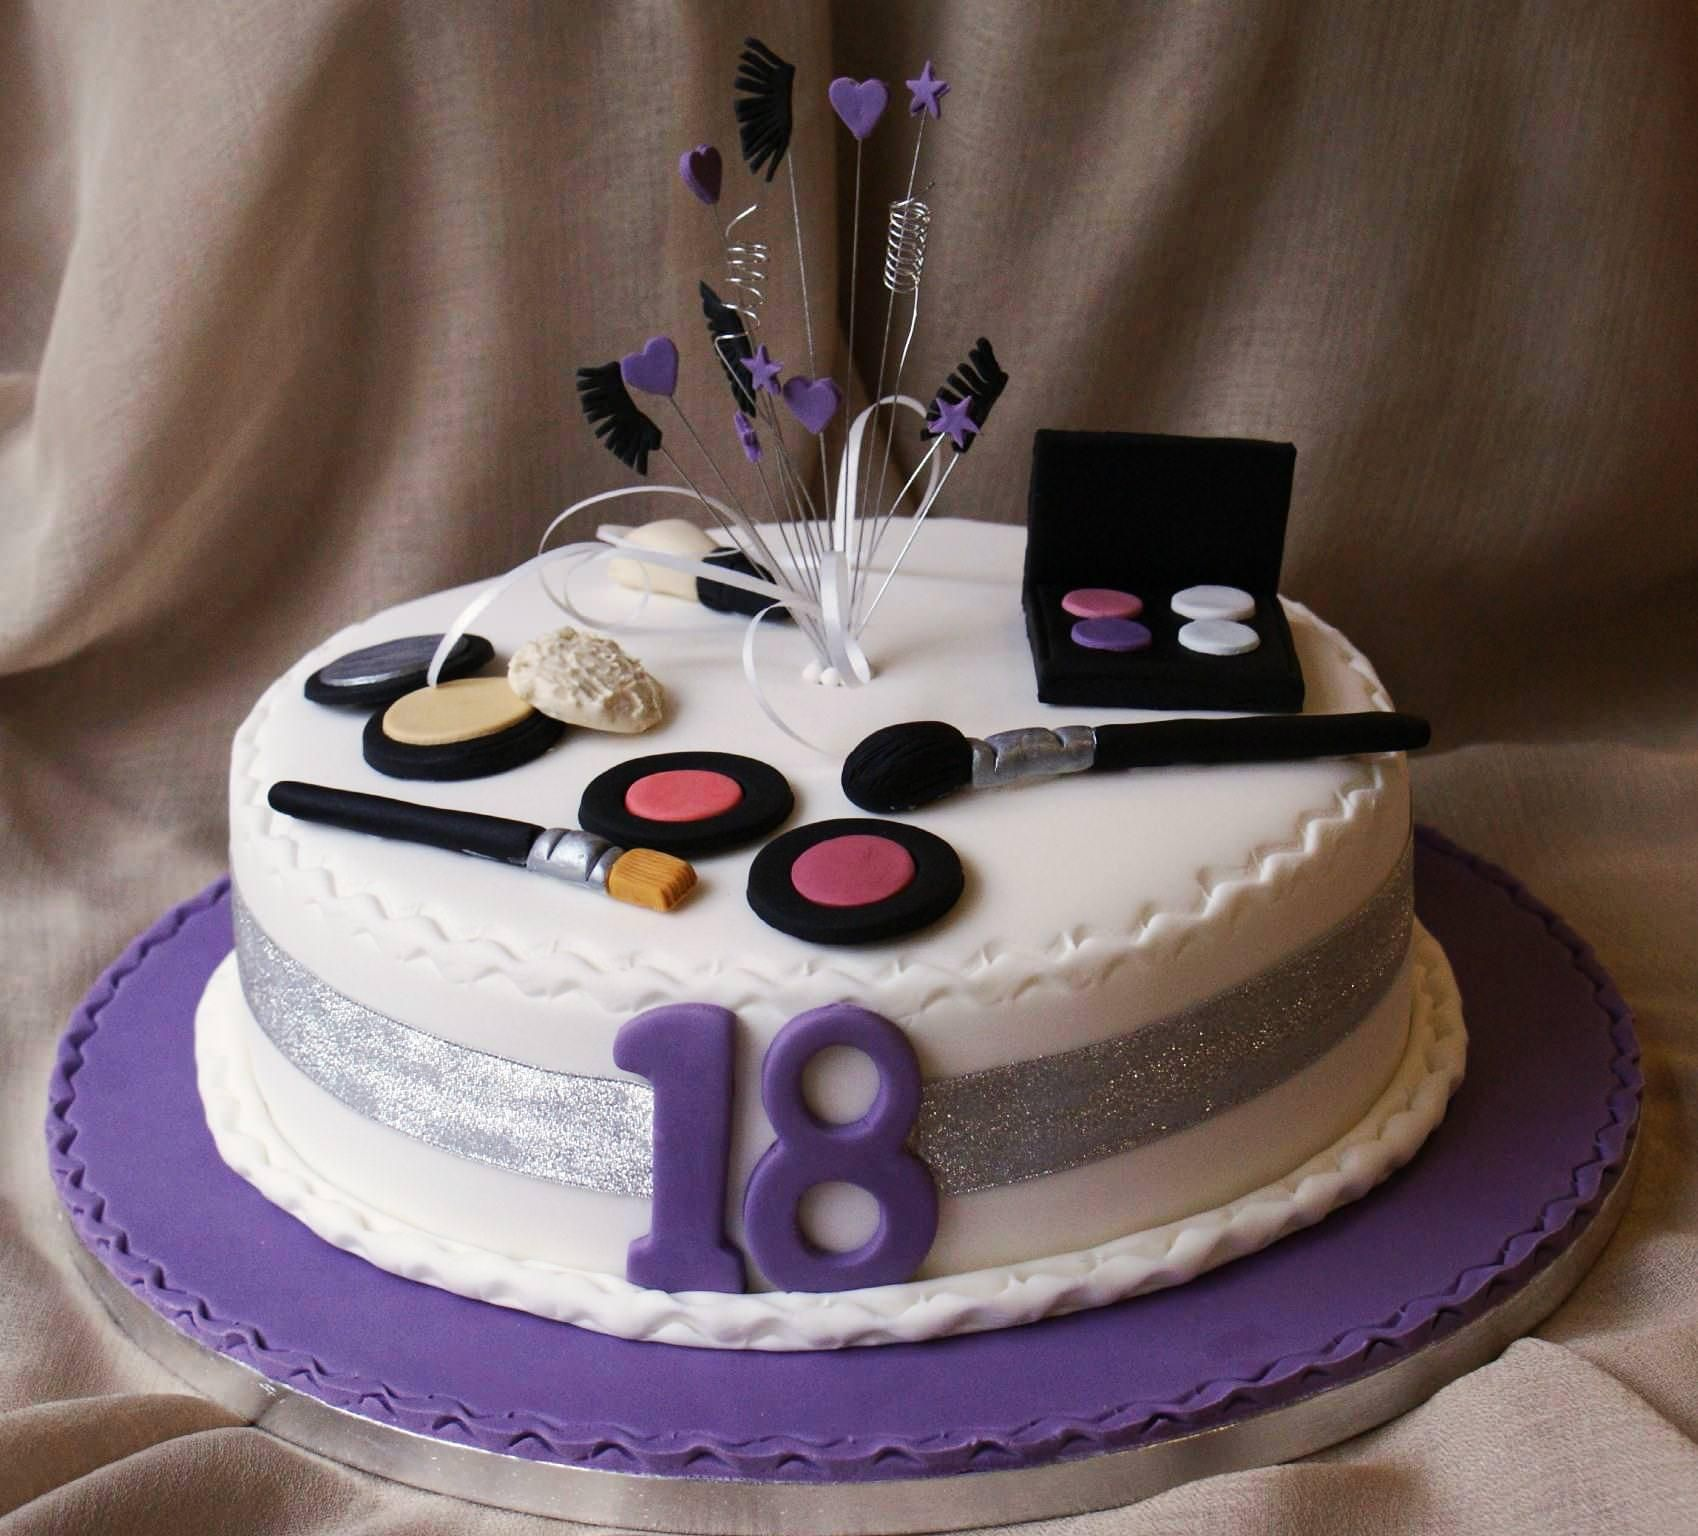 Cake Decorating Party Ideas : 18th Birthday Cakes both for Boys and Girls cake ideas ...